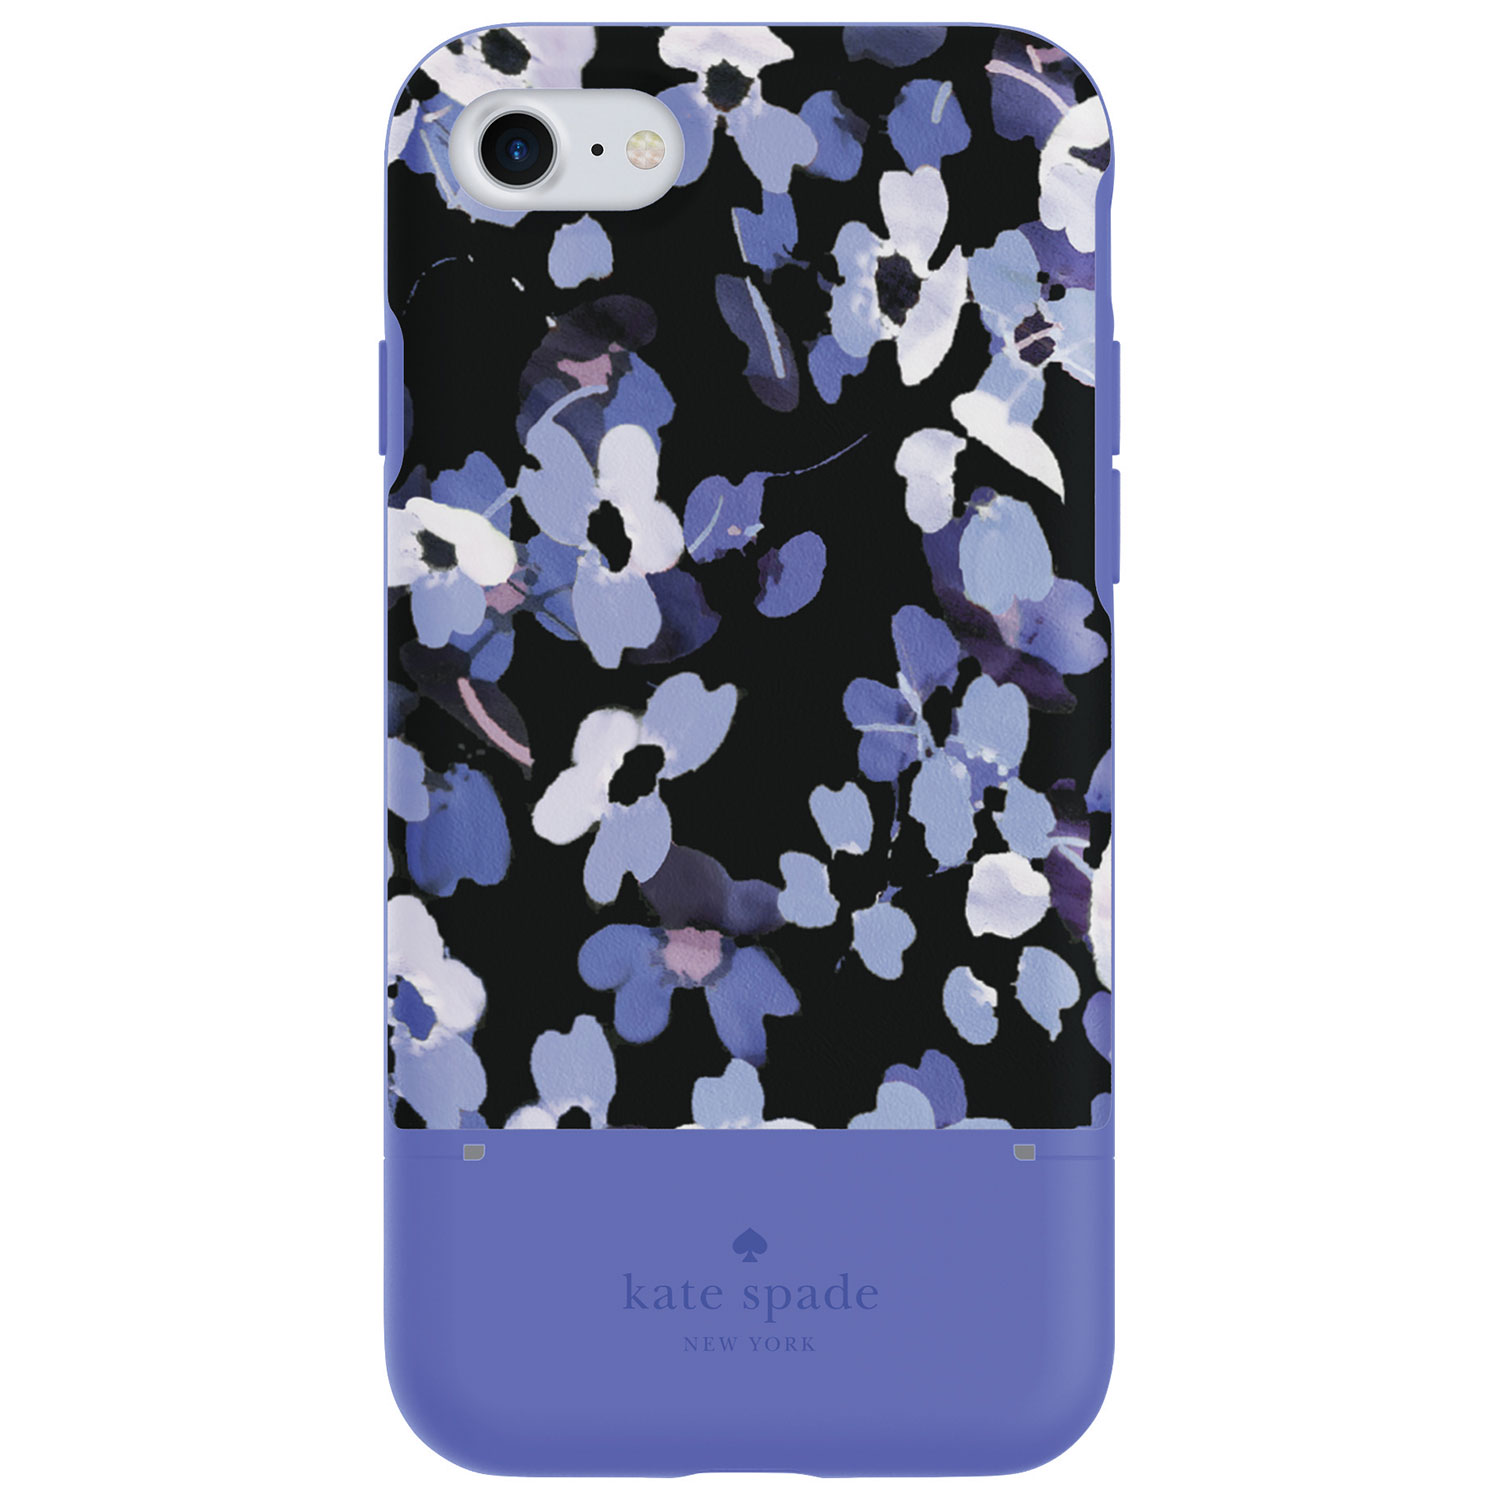 Kate Spade New York Fitted Hard Shell Credit Card Case For Iphone 7   Hydrangea Blue Available Online Only